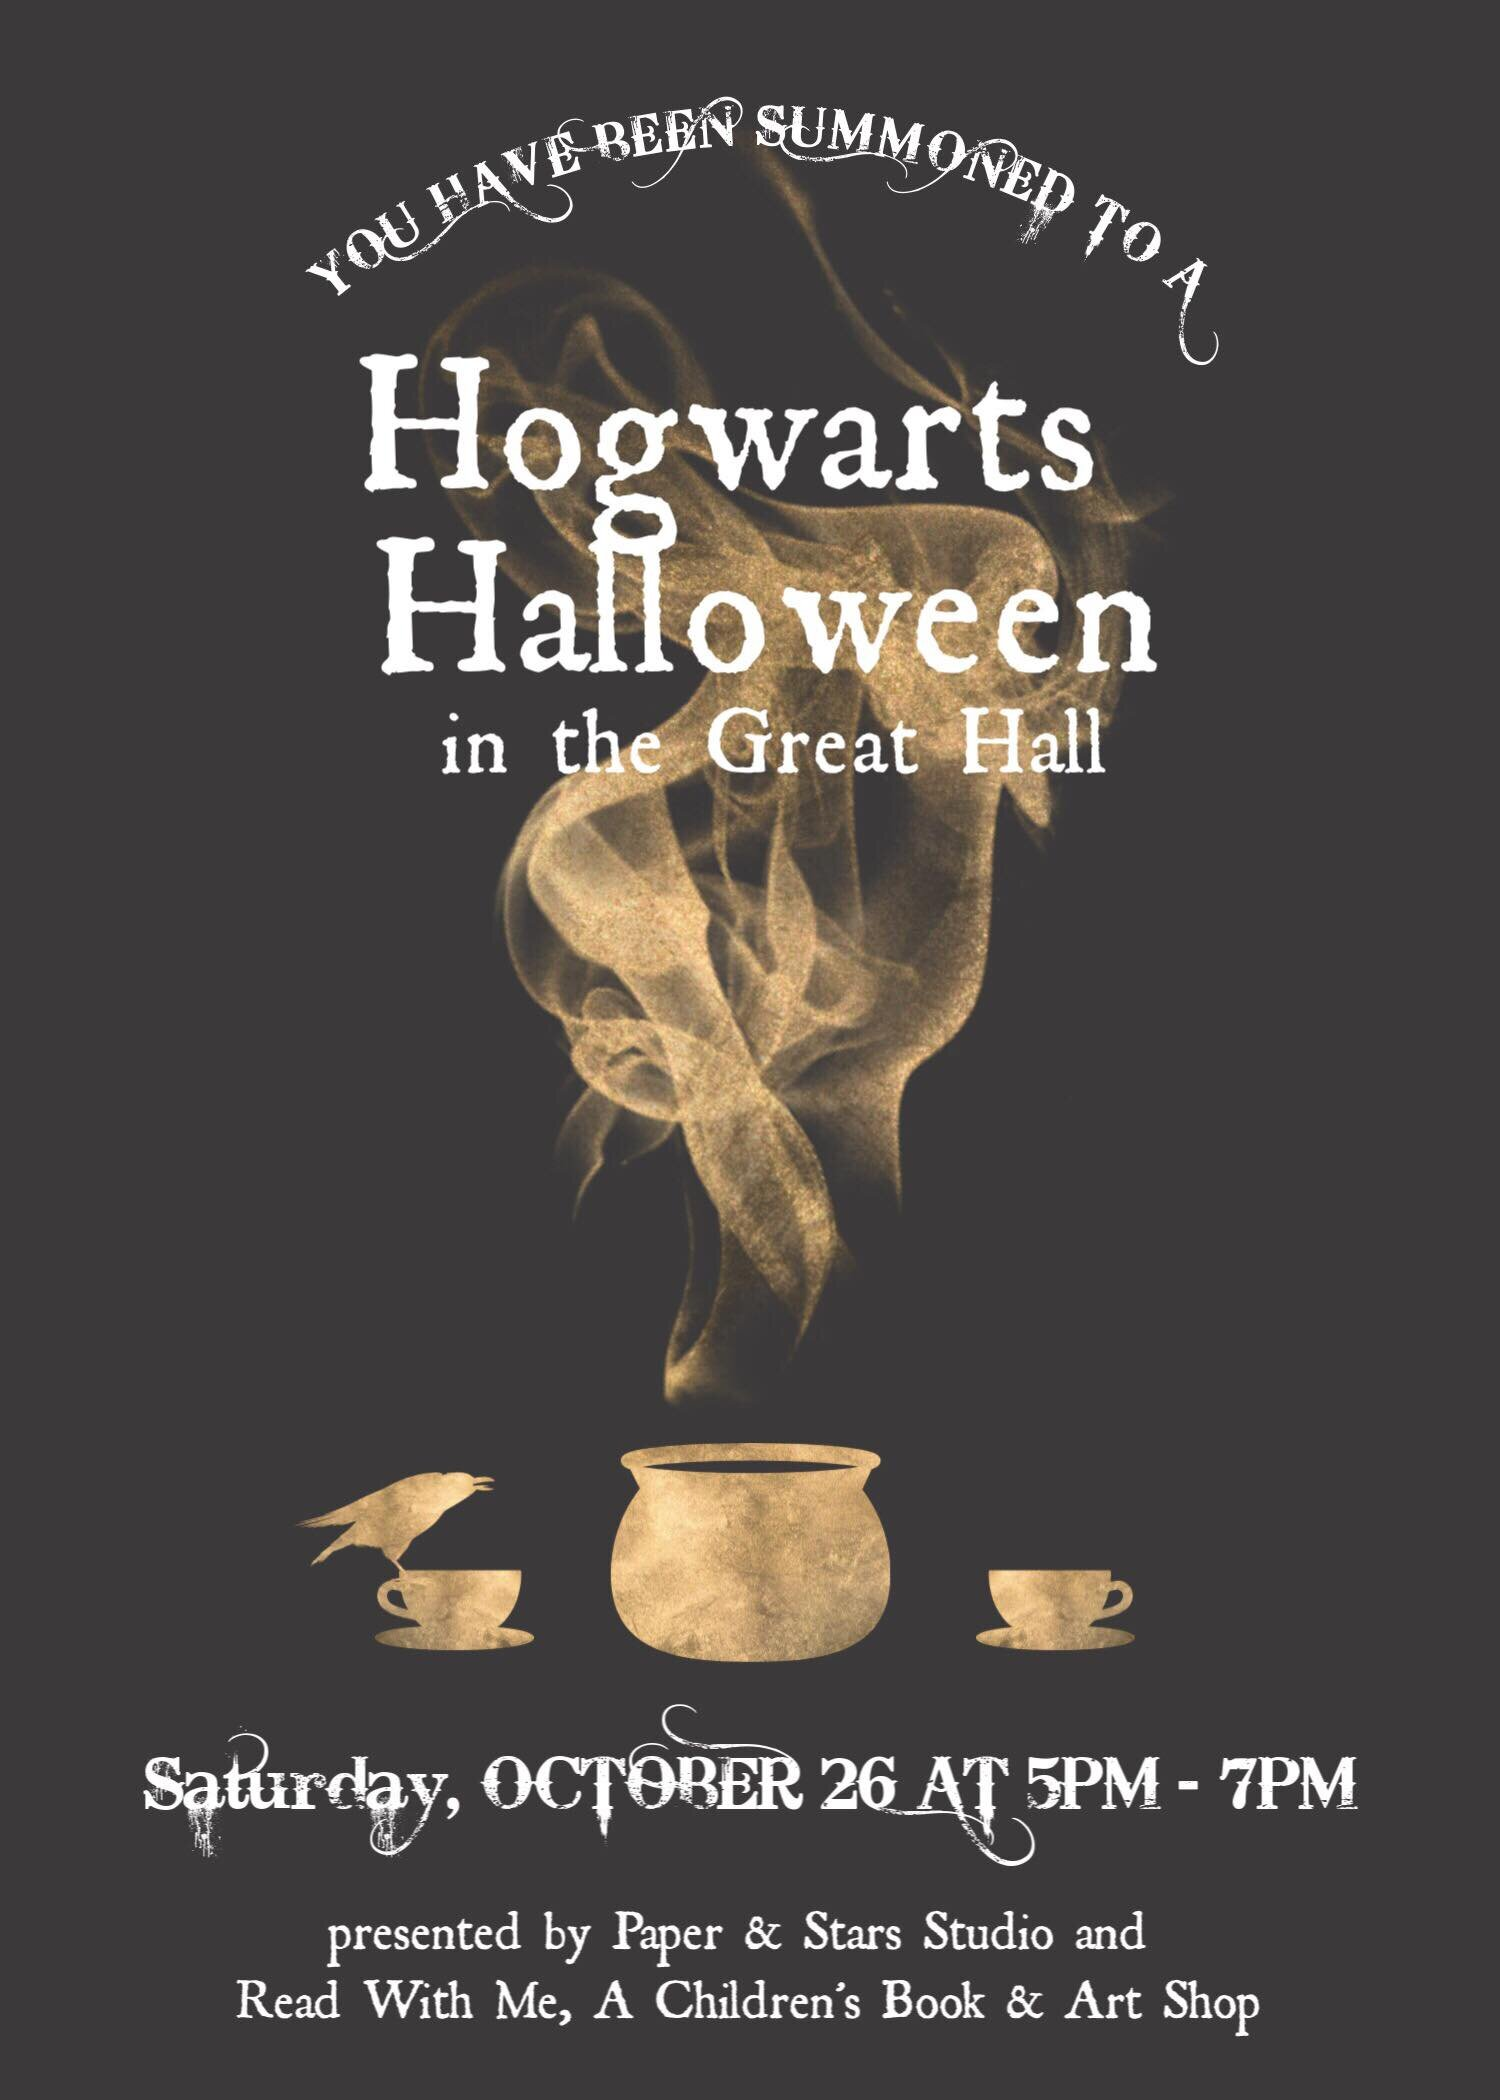 Hogwarts Halloween - Celebrate All Hallow's Eve at Hogwarts with potions, pumpkins, food, and fun! We'll create magical crafts, decorate a Potteresque pumpkin, brew up some potions, and enjoy food from the Halloween Feast in The Great Hall. Wear your best Hogwarts-inspired finery, and watch out for trolls in the dungeon!Tickets and information on Facebook.Tickets on Square.